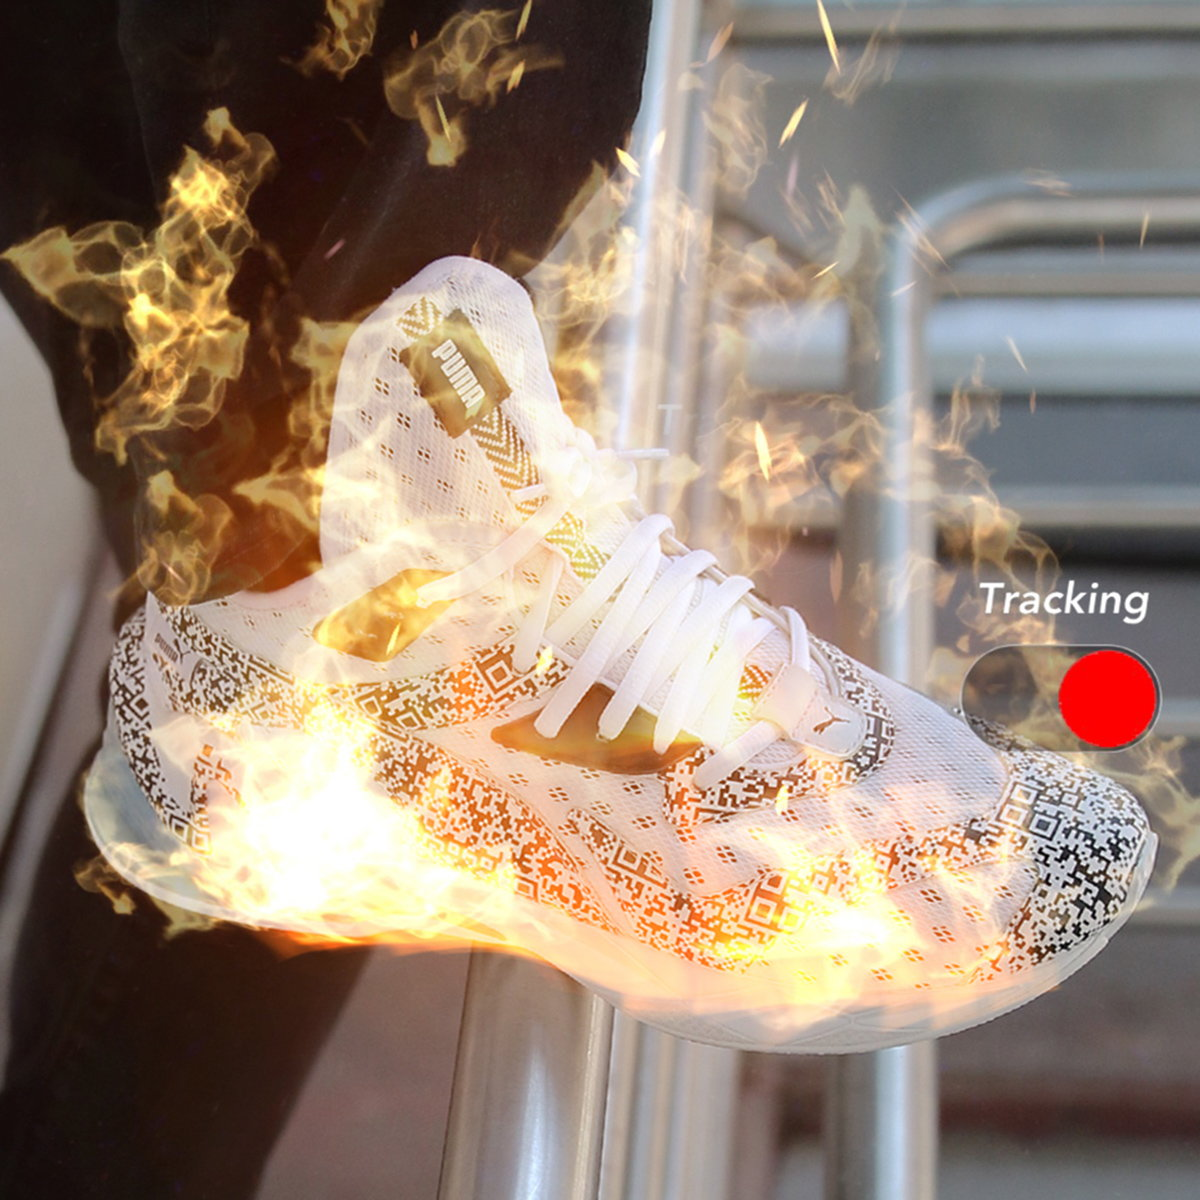 INPHANTRY Creates Immersive AR App for PUMA's LQDCELL Technology